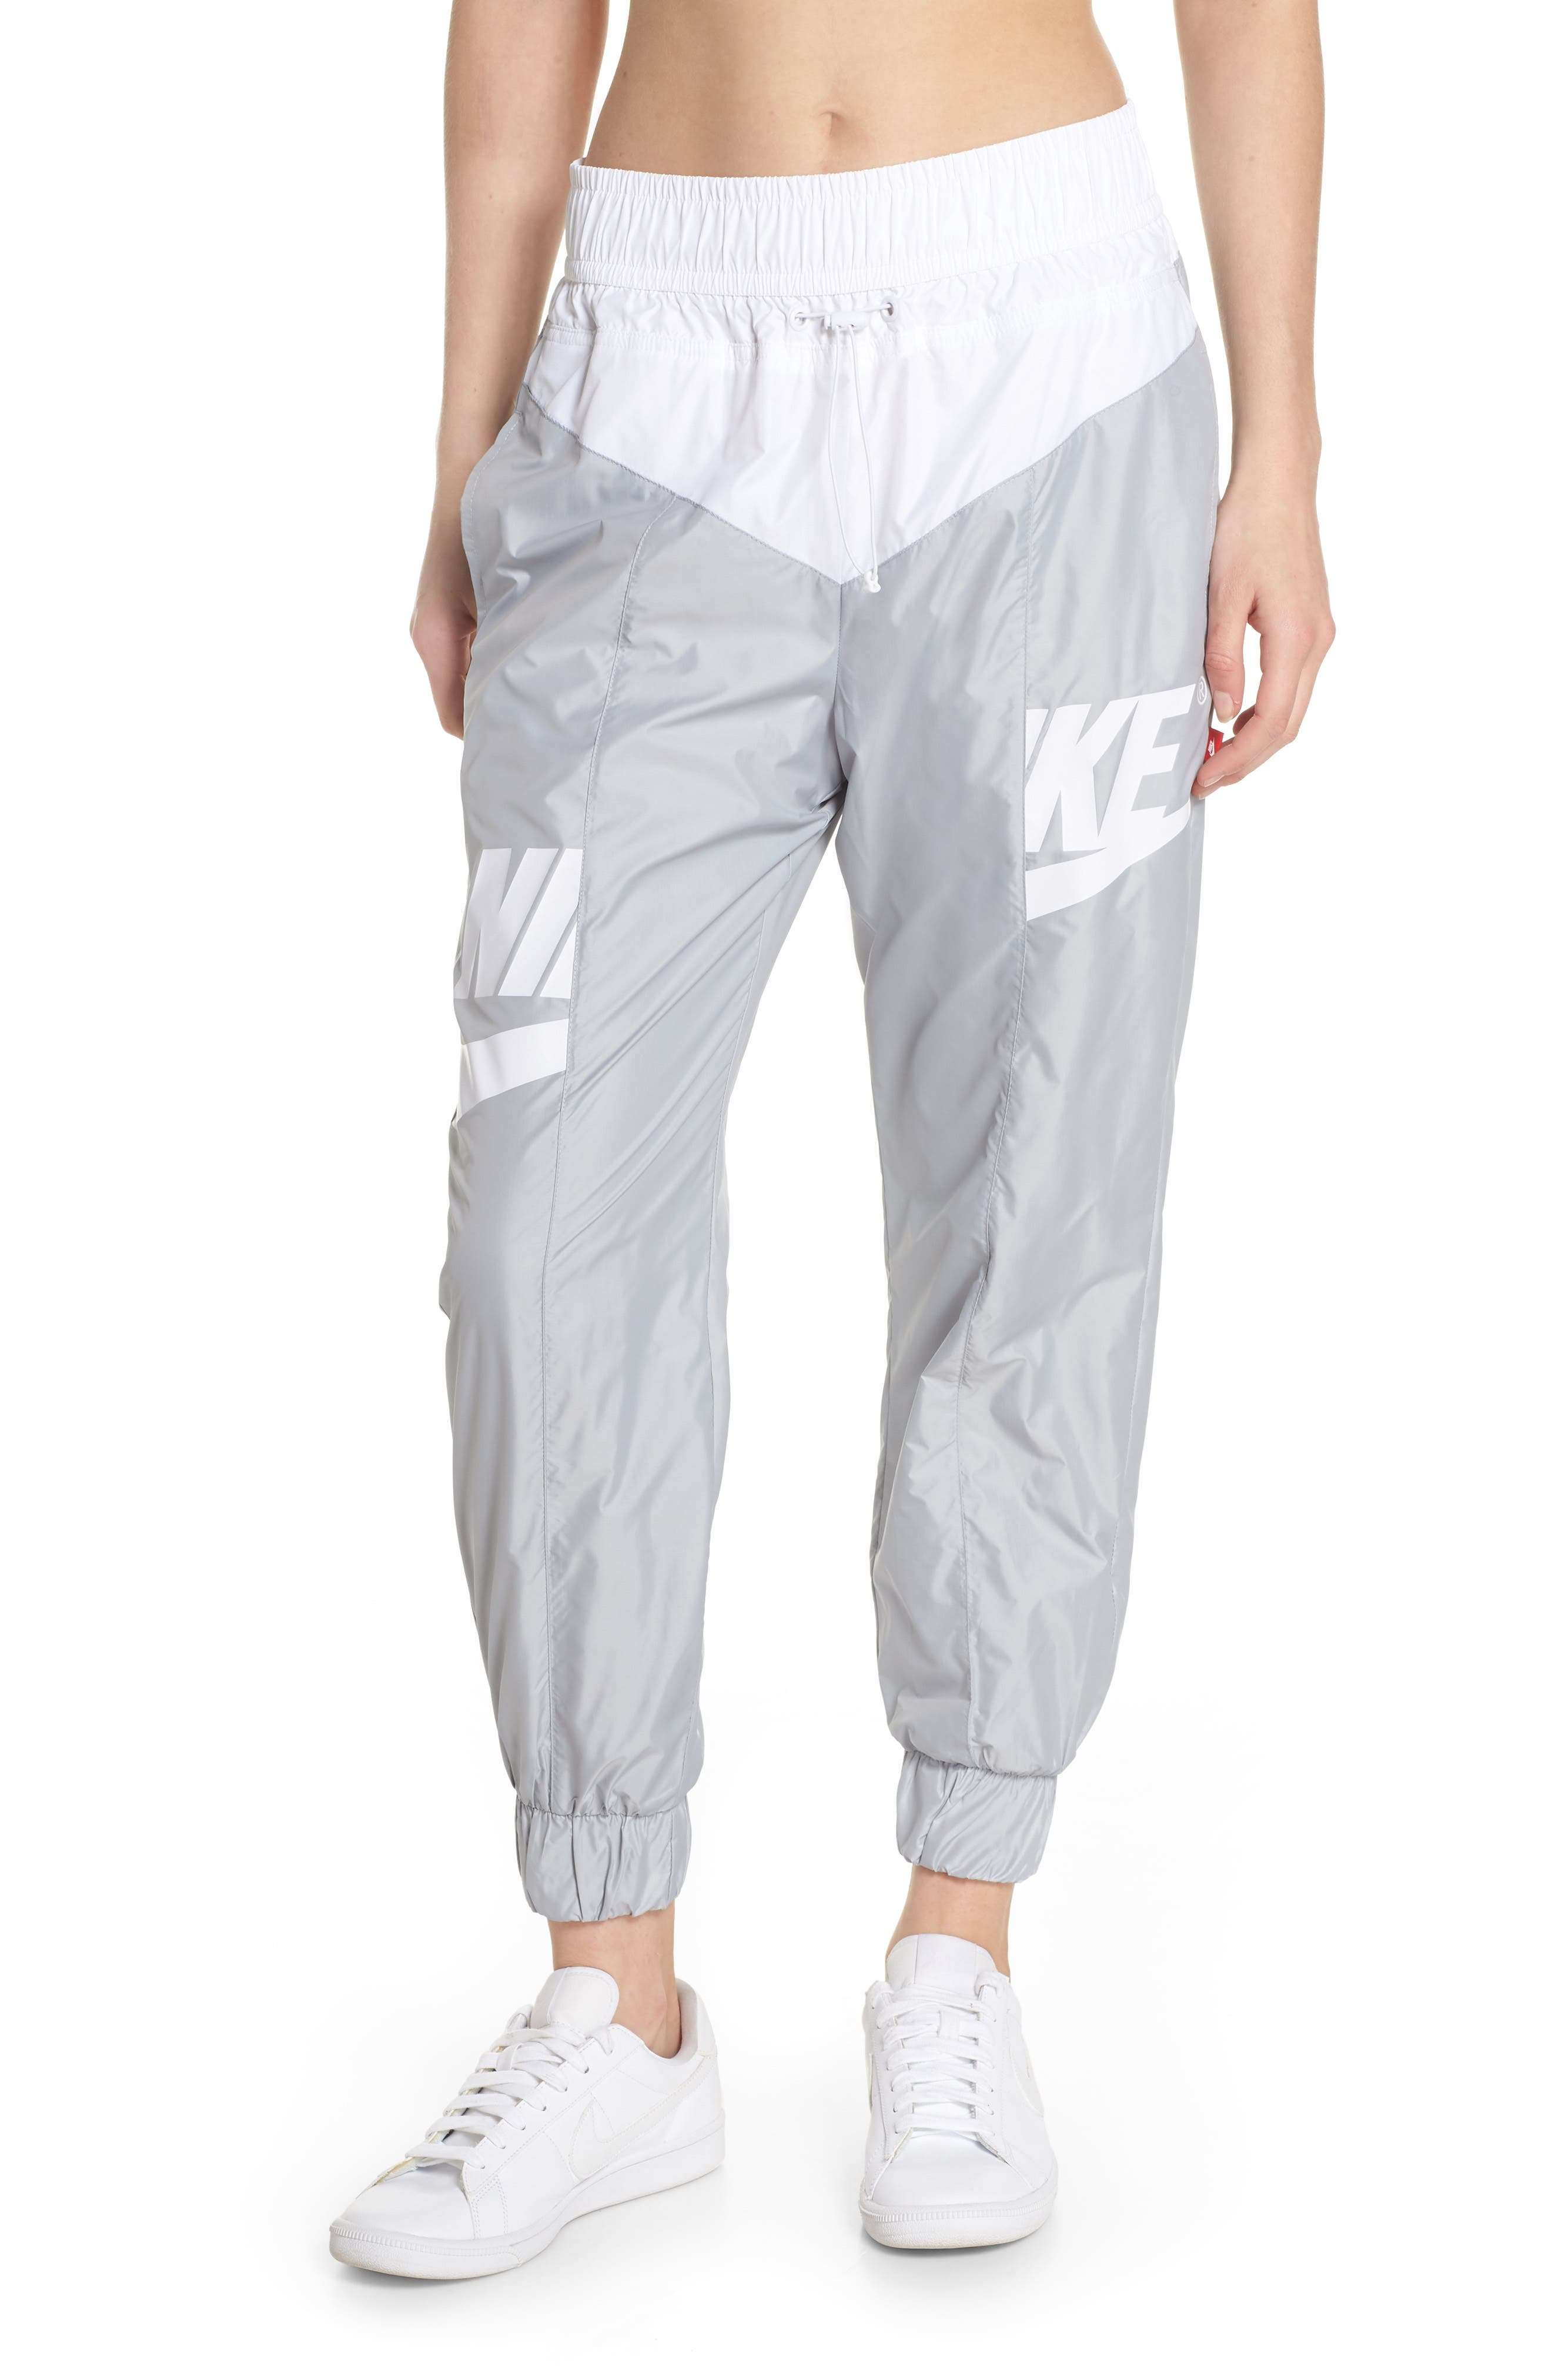 Sportswear Windrunner pants,                             Main thumbnail 1, color,                             Wolf Grey/ Summit White